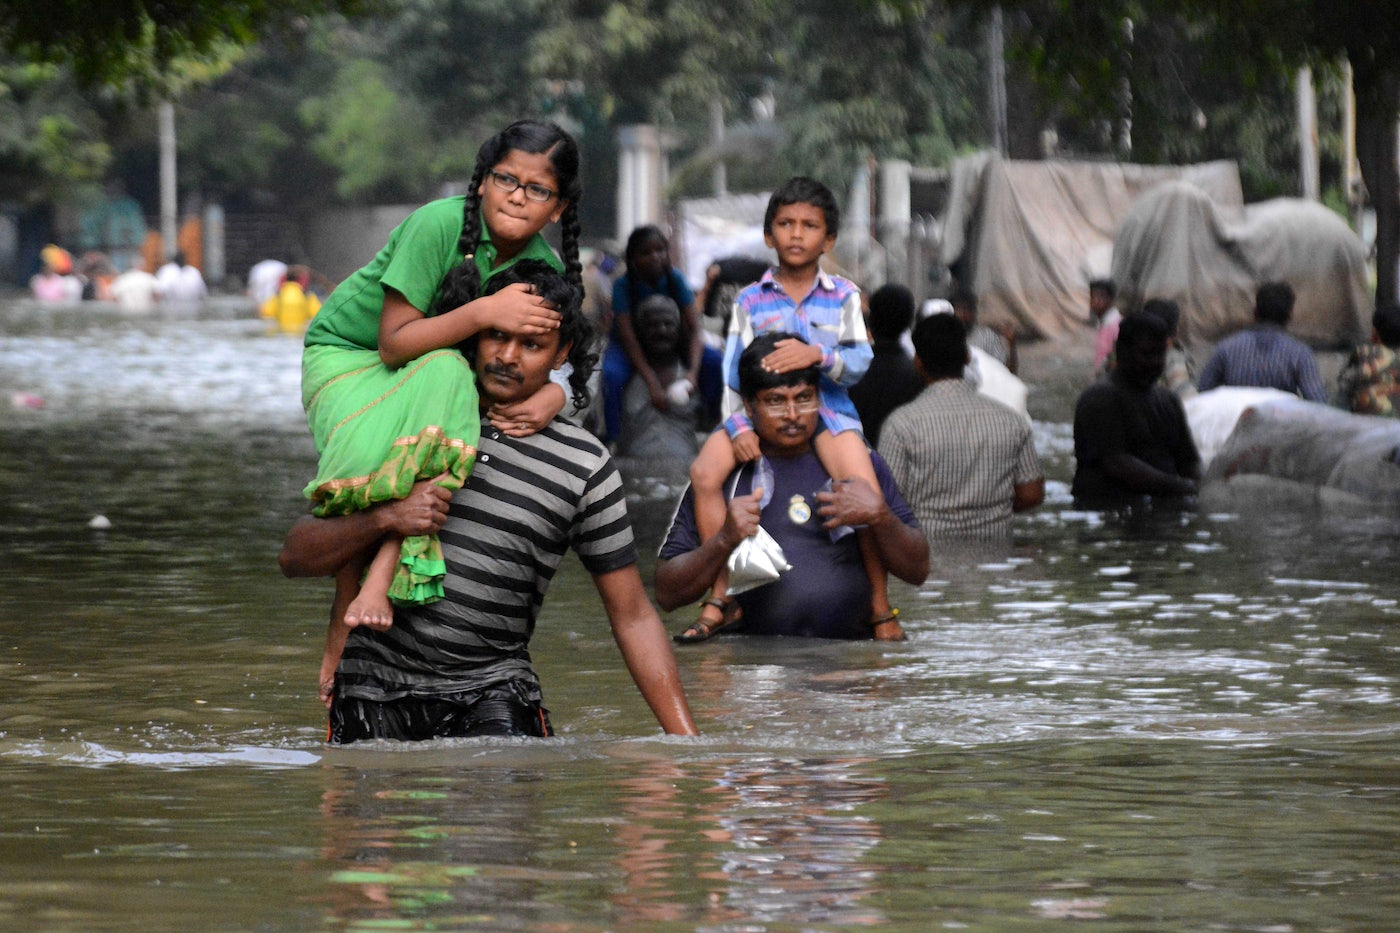 Chennai residents carry children through floodwaters in 2015.